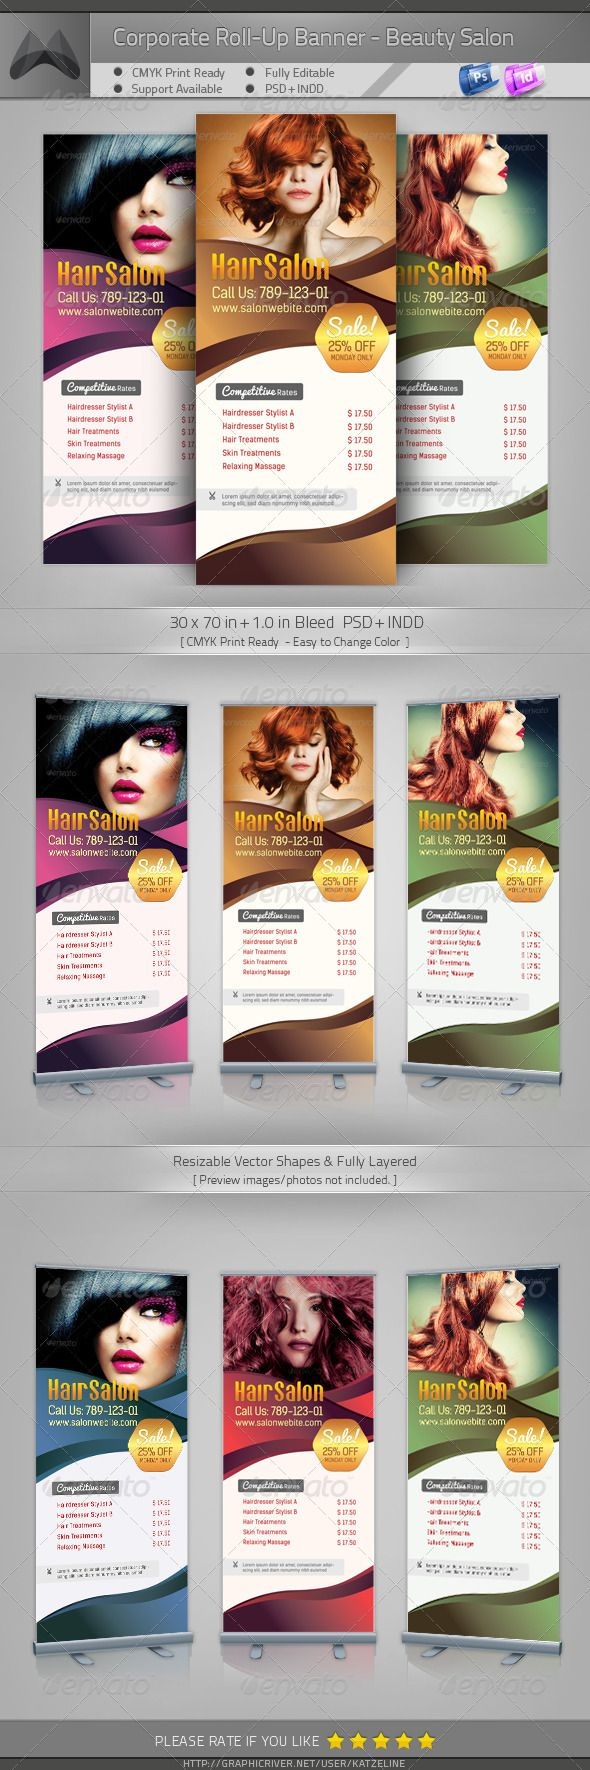 Corporate Outdoor Roll-up Banner - Beauty Salon